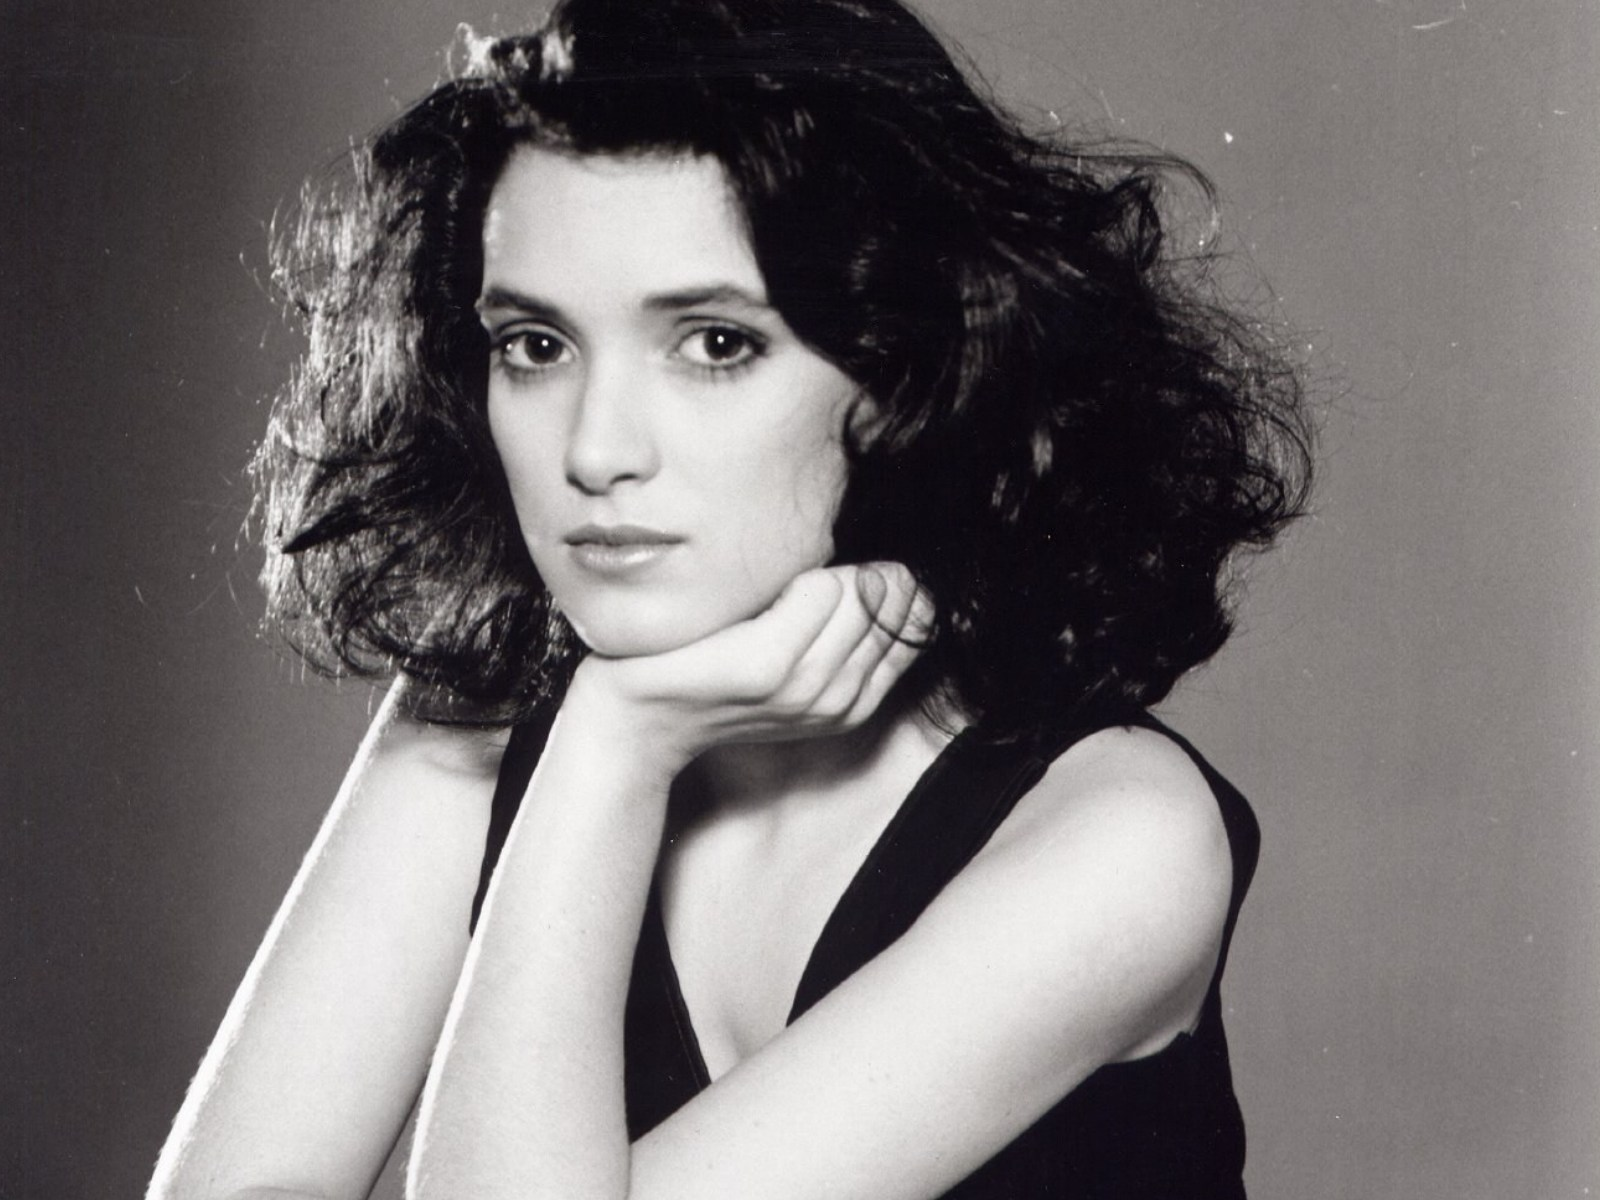 1600x1200 - Winona Ryder Wallpapers 32